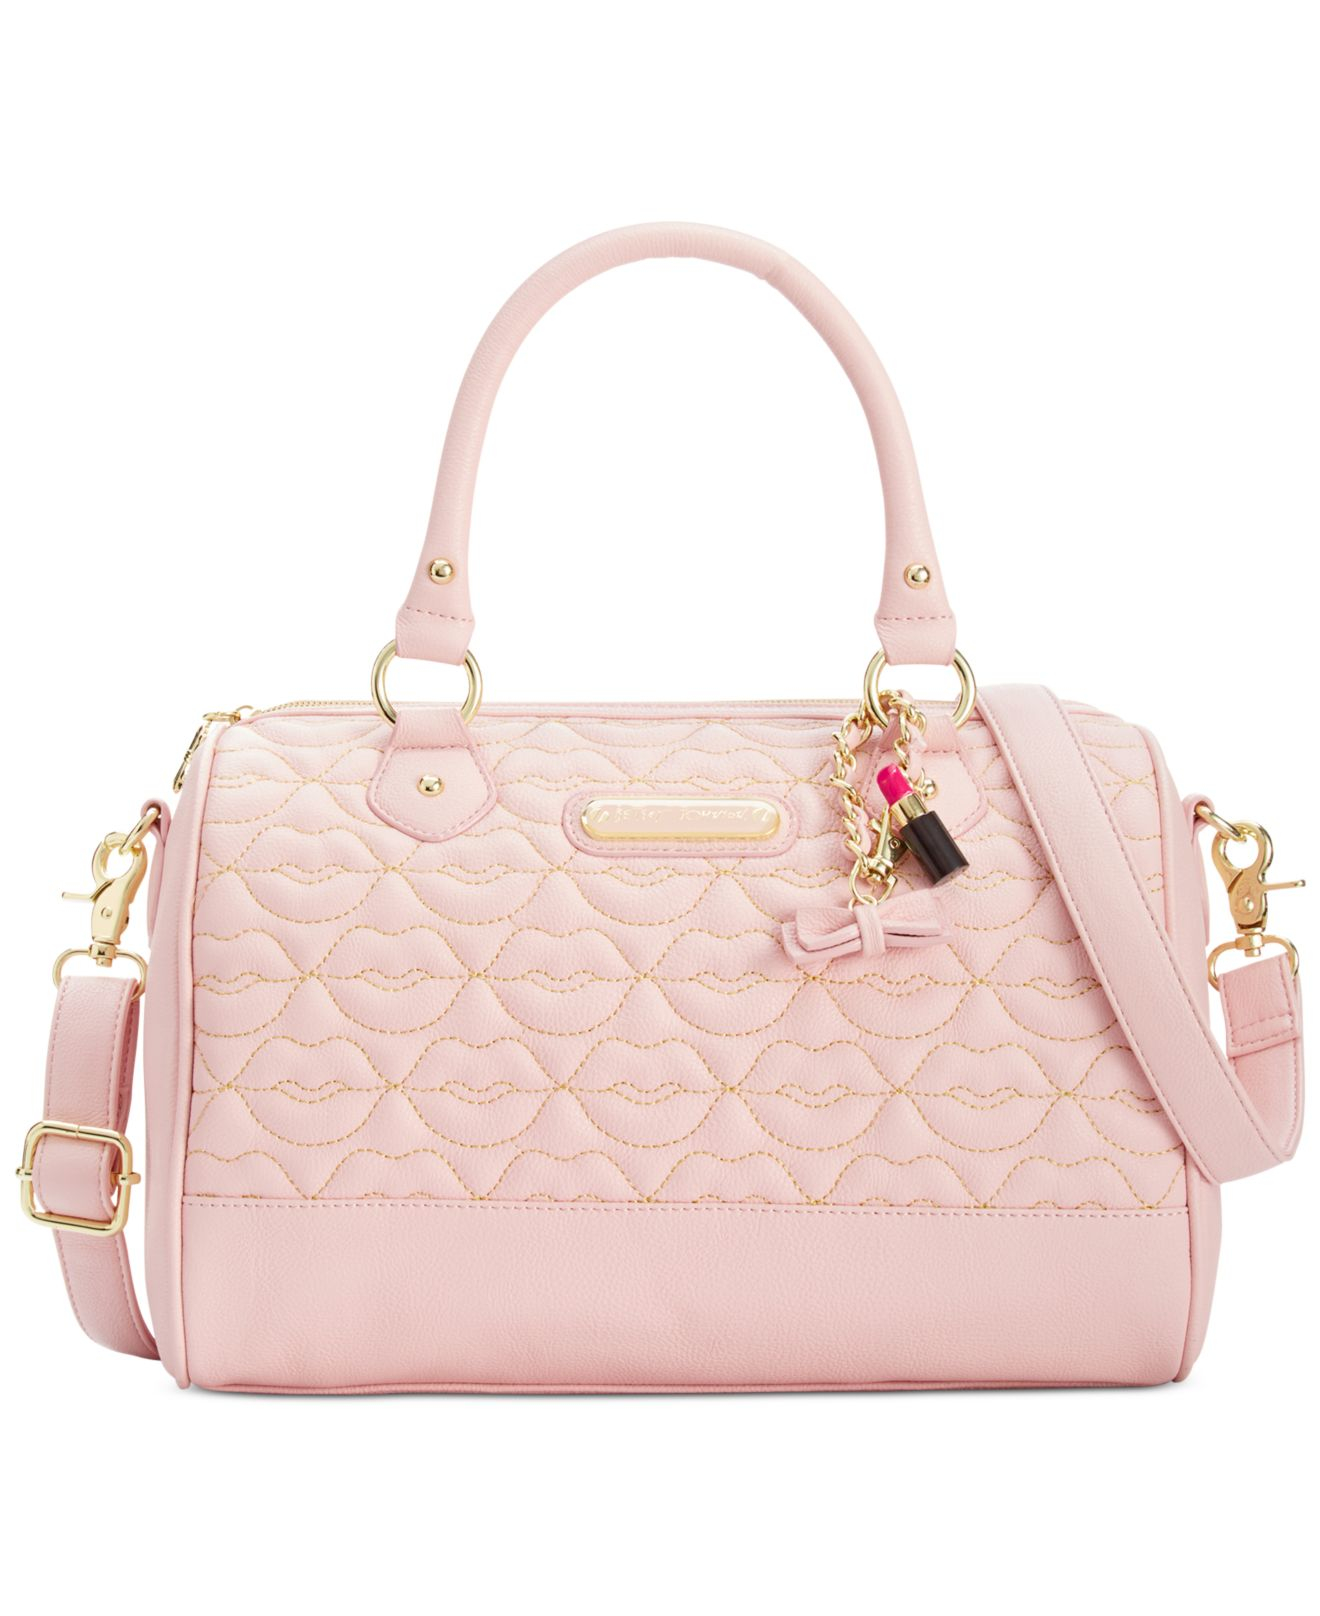 4ab6e660b1 Lyst - Betsey Johnson Blush Quilted Lips Satchel in Pink